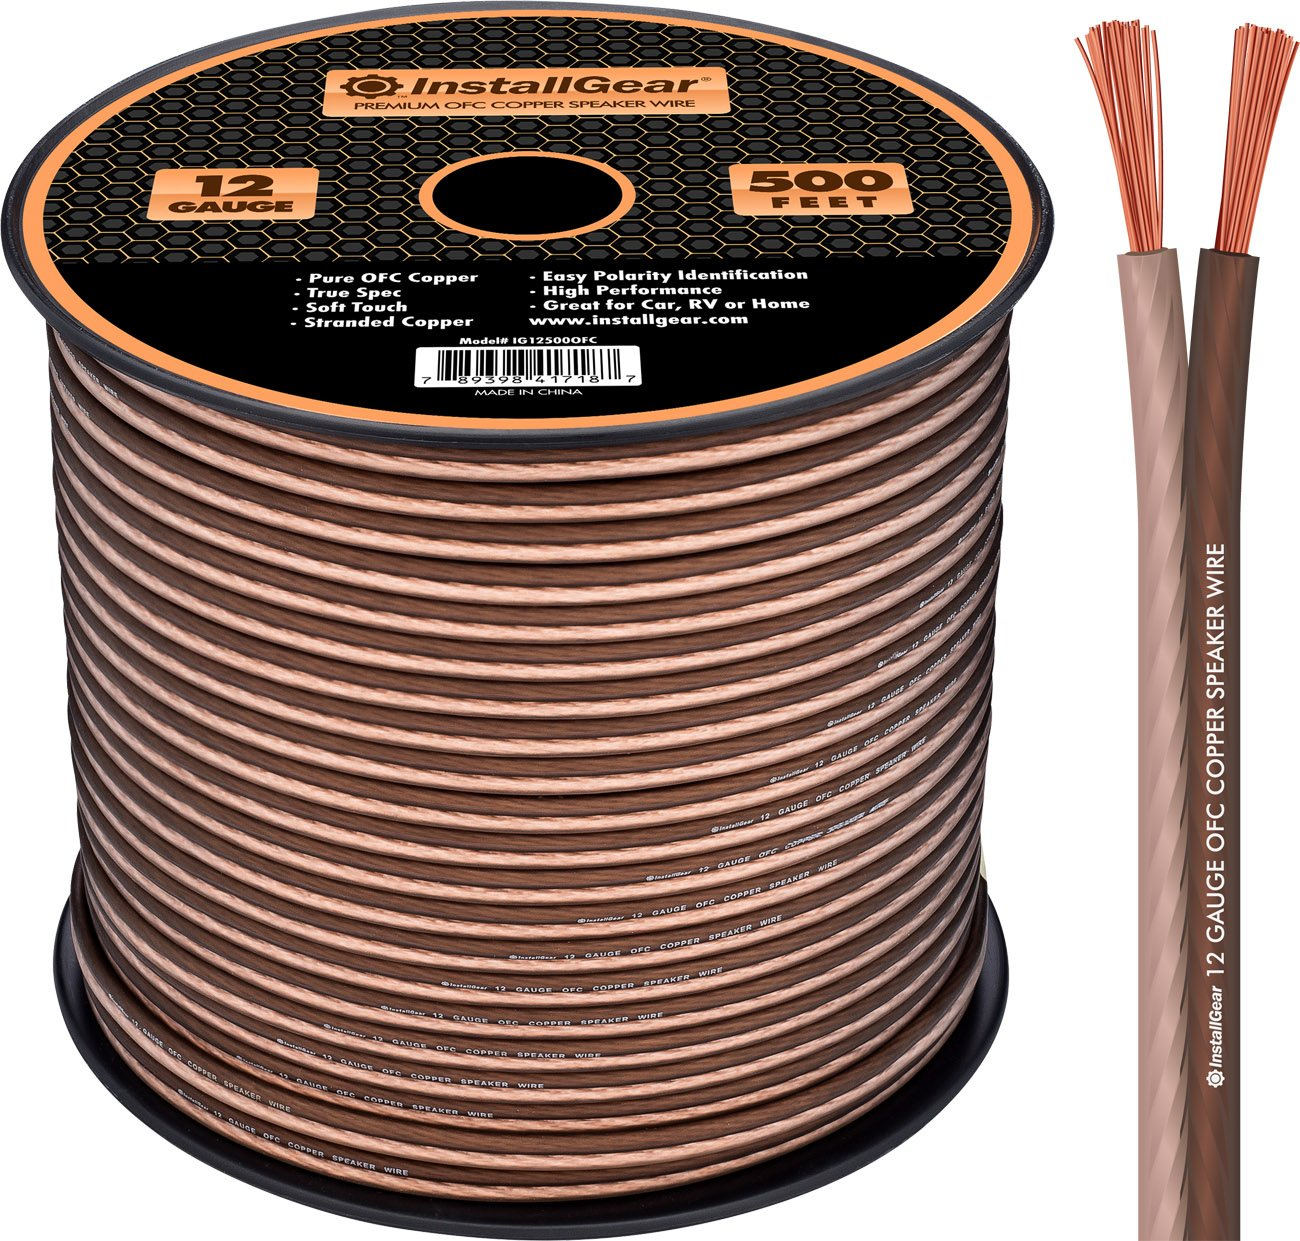 InstallGear 12 Gauge Speaker Wire - 99.9% Oxygen-Free Copper - True Spec and Soft Touch Cable (500-feet) by InstallGear